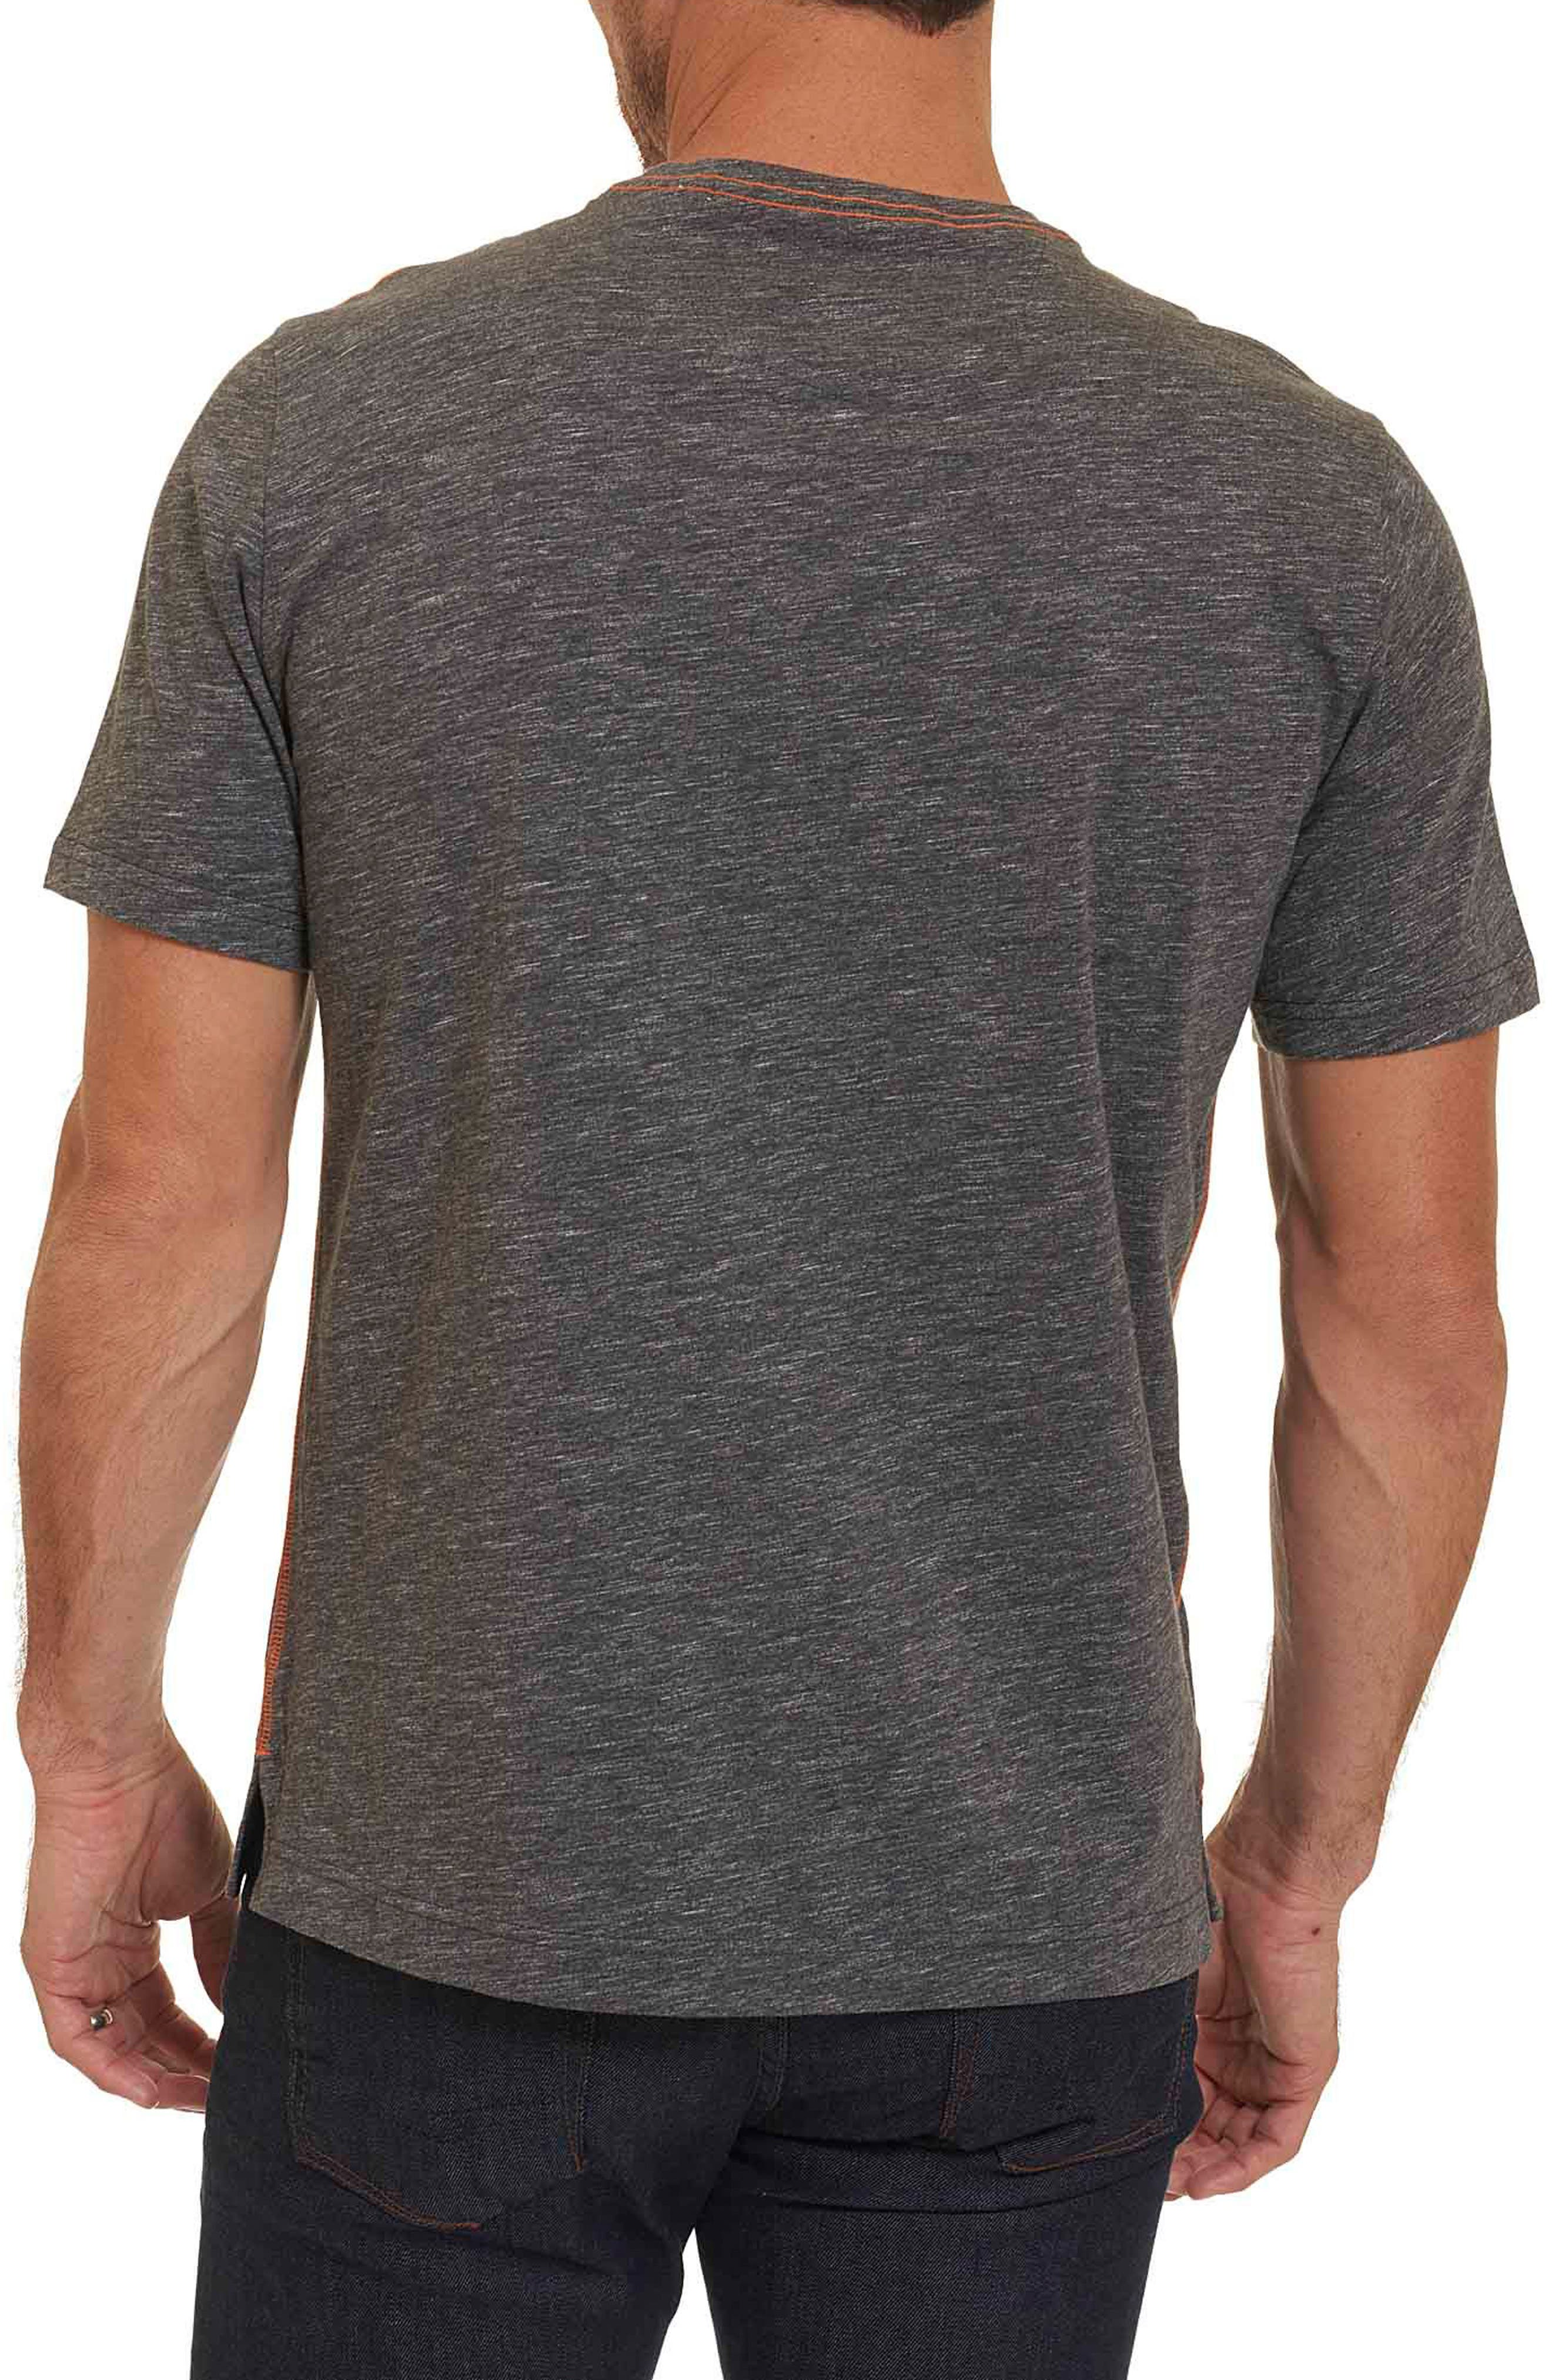 Torrance Graphic T-Shirt,                             Alternate thumbnail 2, color,                             Heather Charcoal